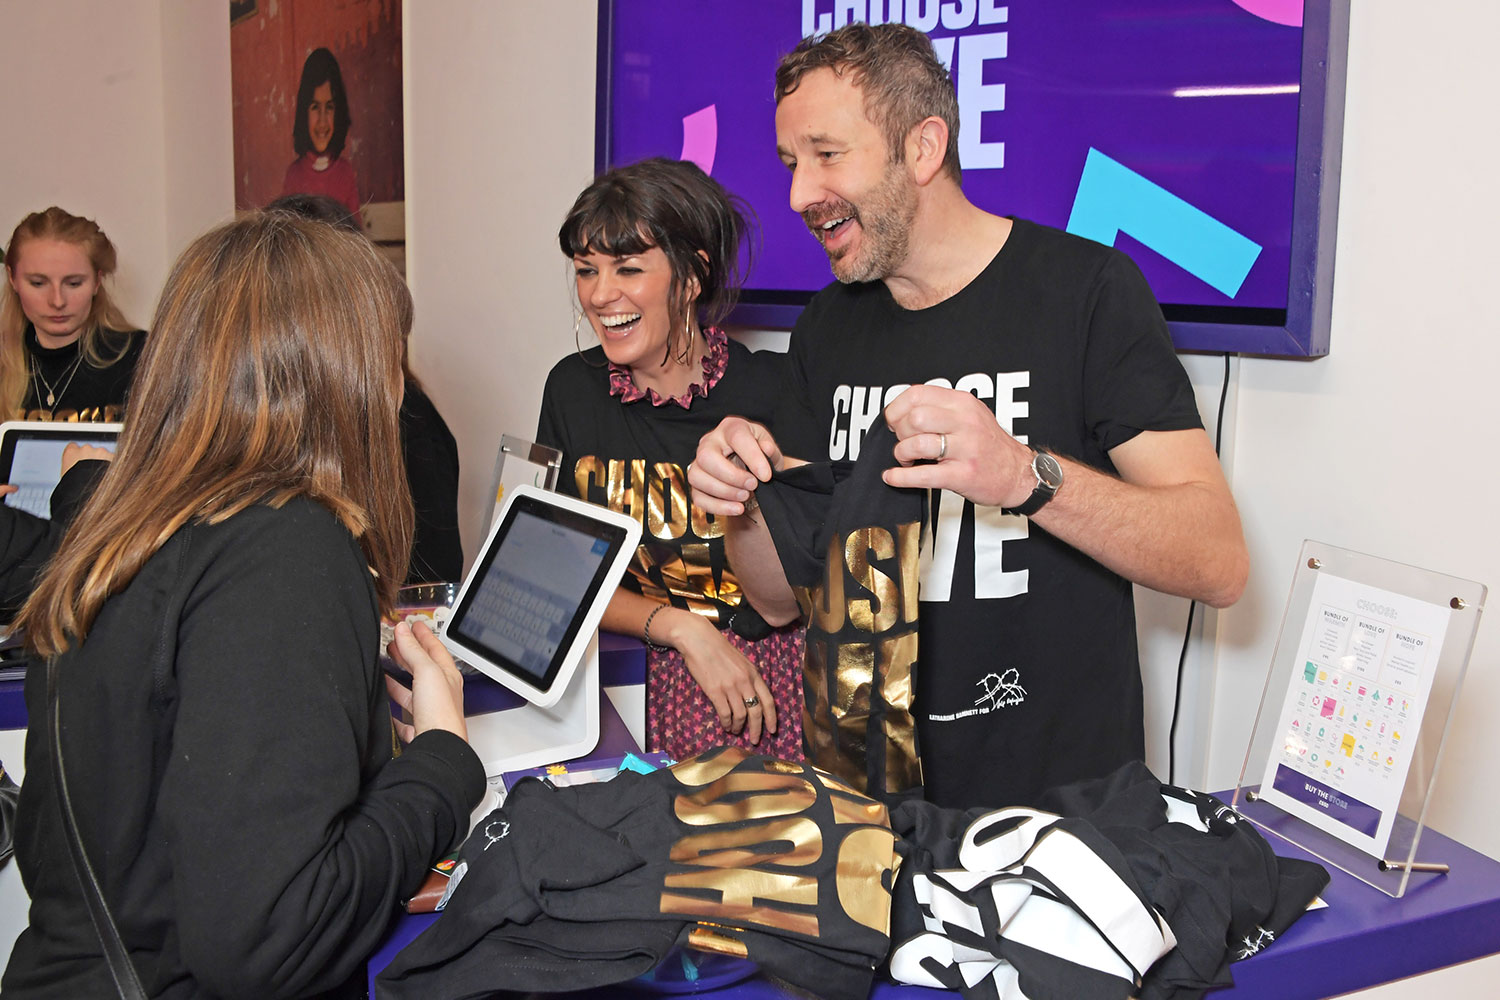 Dawn O'Porter and Chris O'Dowd volunteer at the 'Choose Love' shop for Help Refugees in Covent Garden on December 19, 2019 in London, England